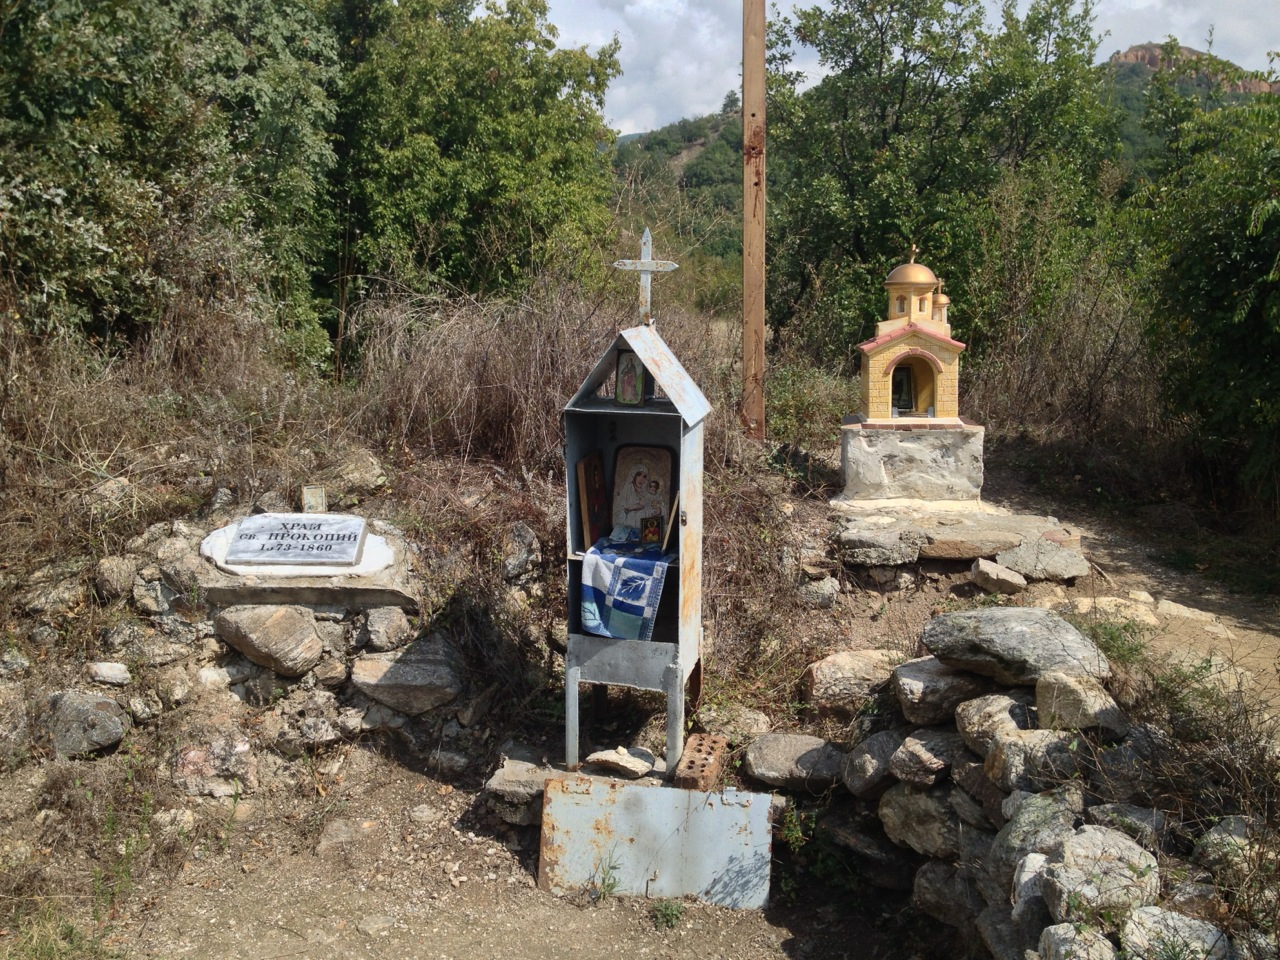 The original location of St. Prokopii Church, reportedly the only church in Bulgaria dedicated to this saint